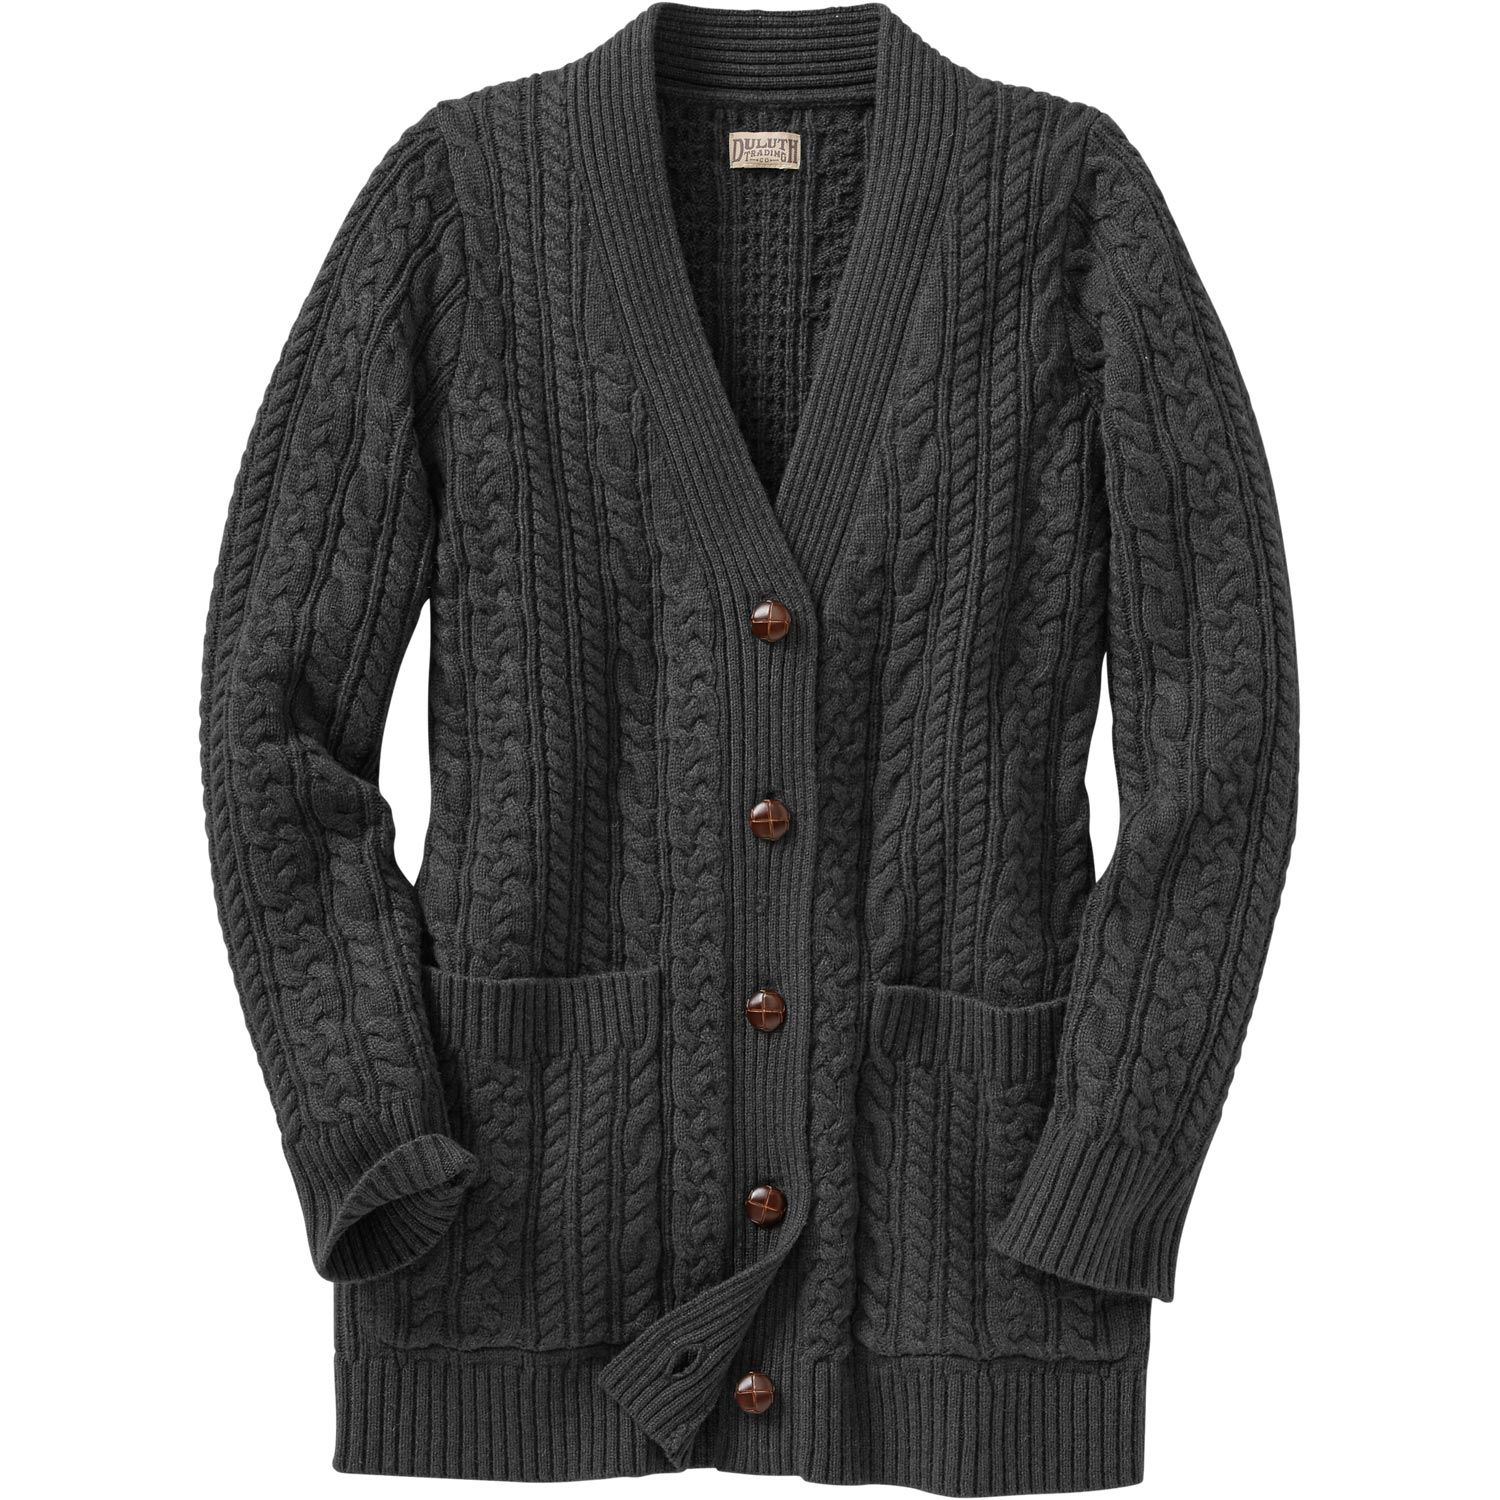 The women's Fisherman Long Cardigan Sweater looks like a classic ...